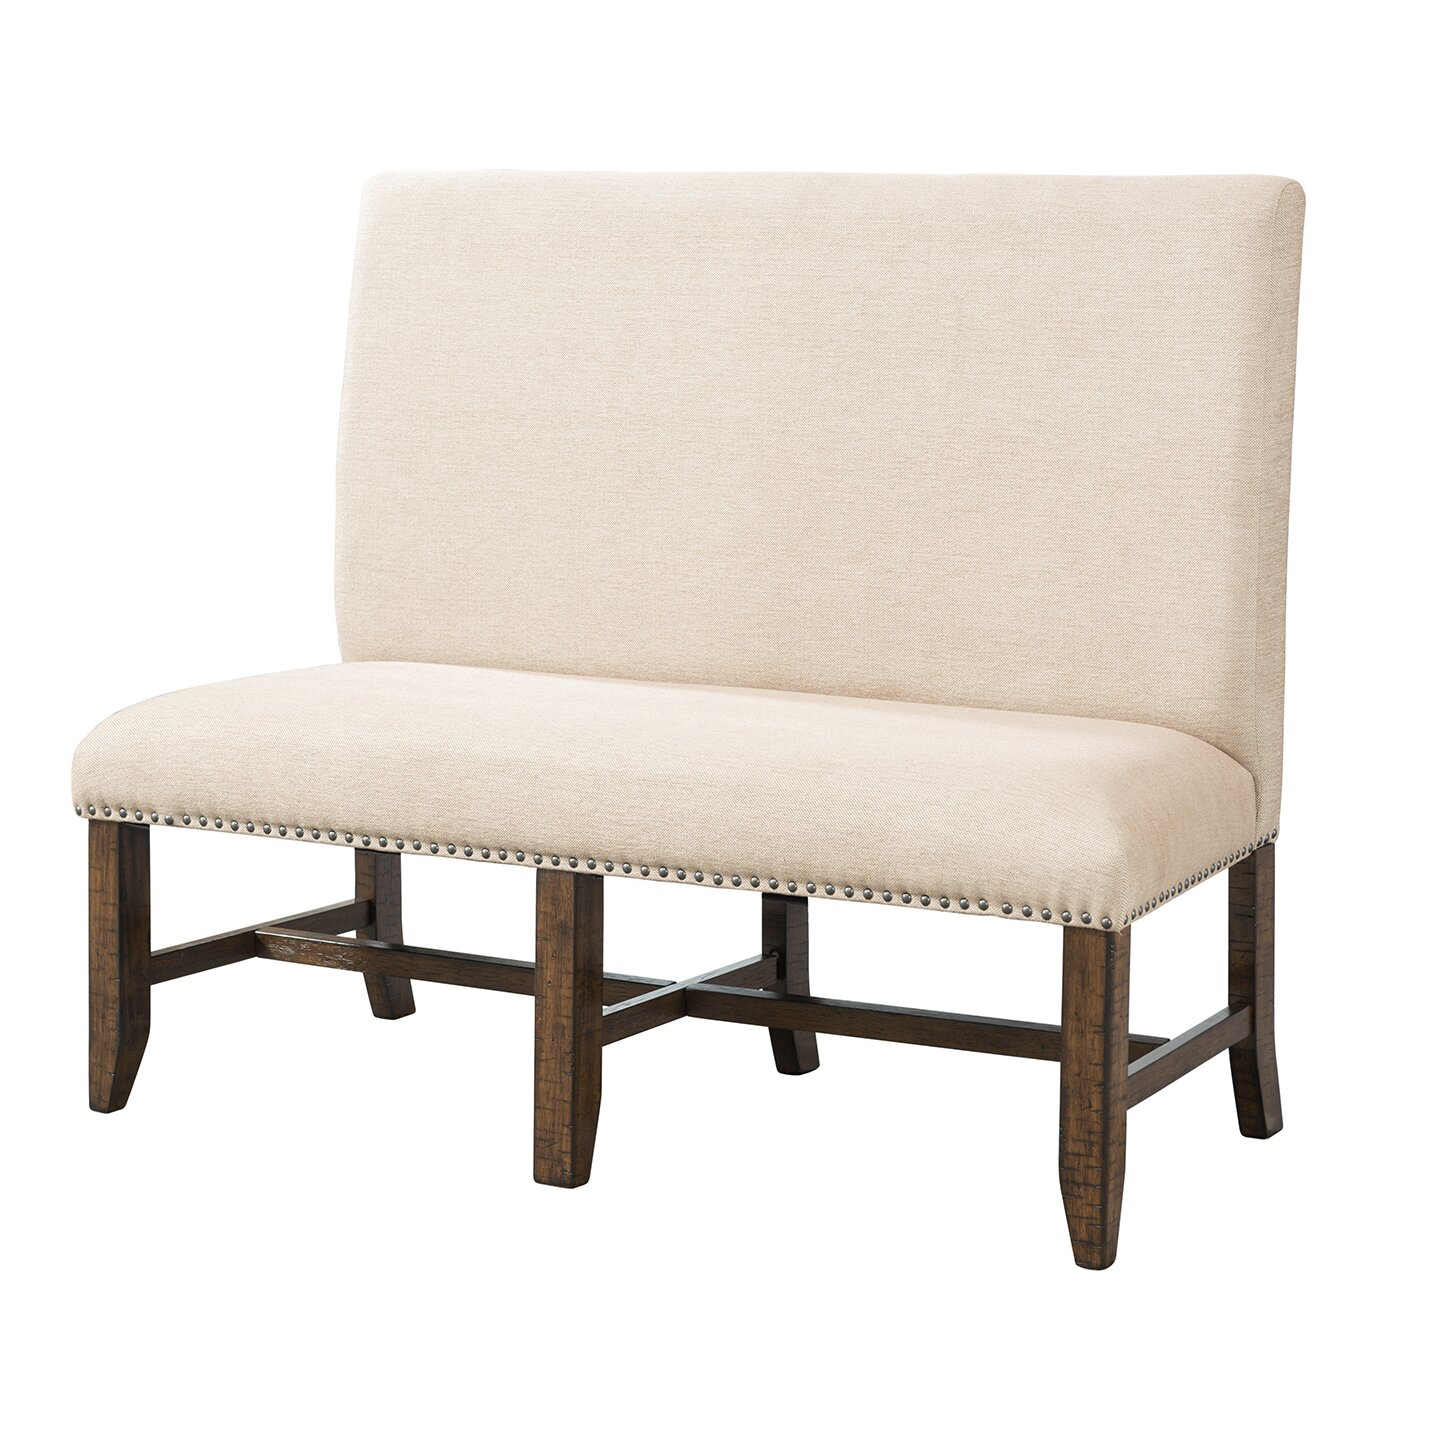 Picket House Furnishings Francis Upholstered Kitchen Bench